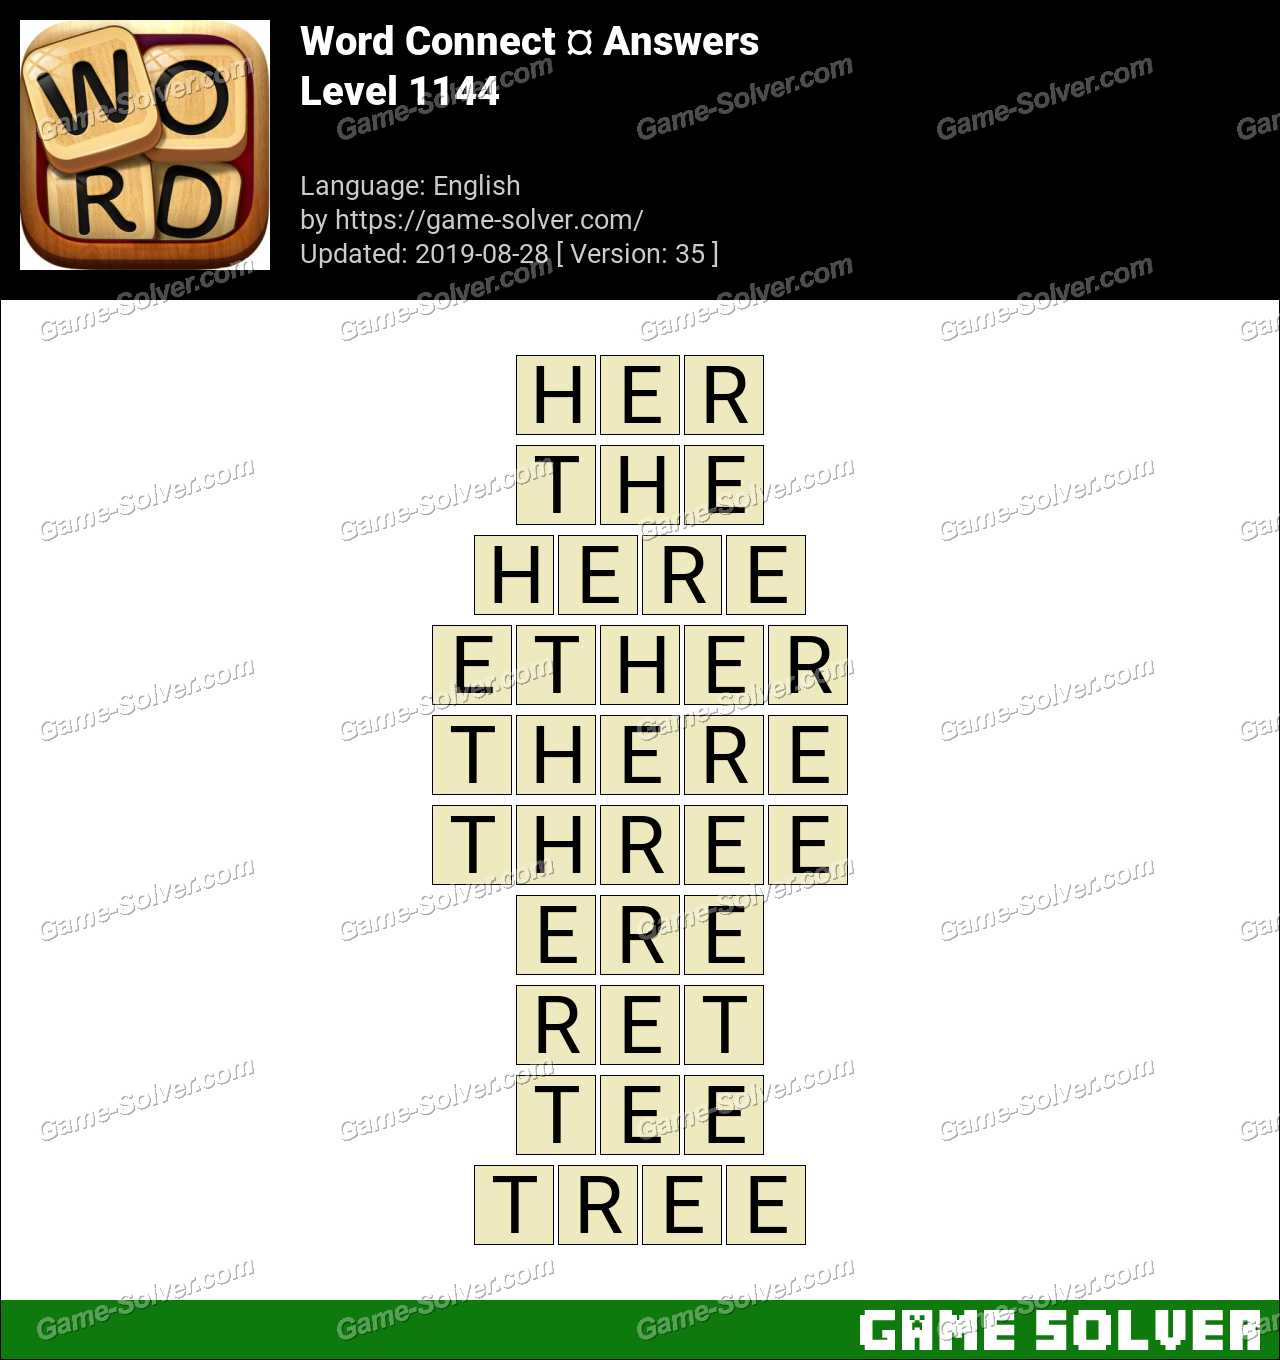 Word Connect Level 1144 Answers